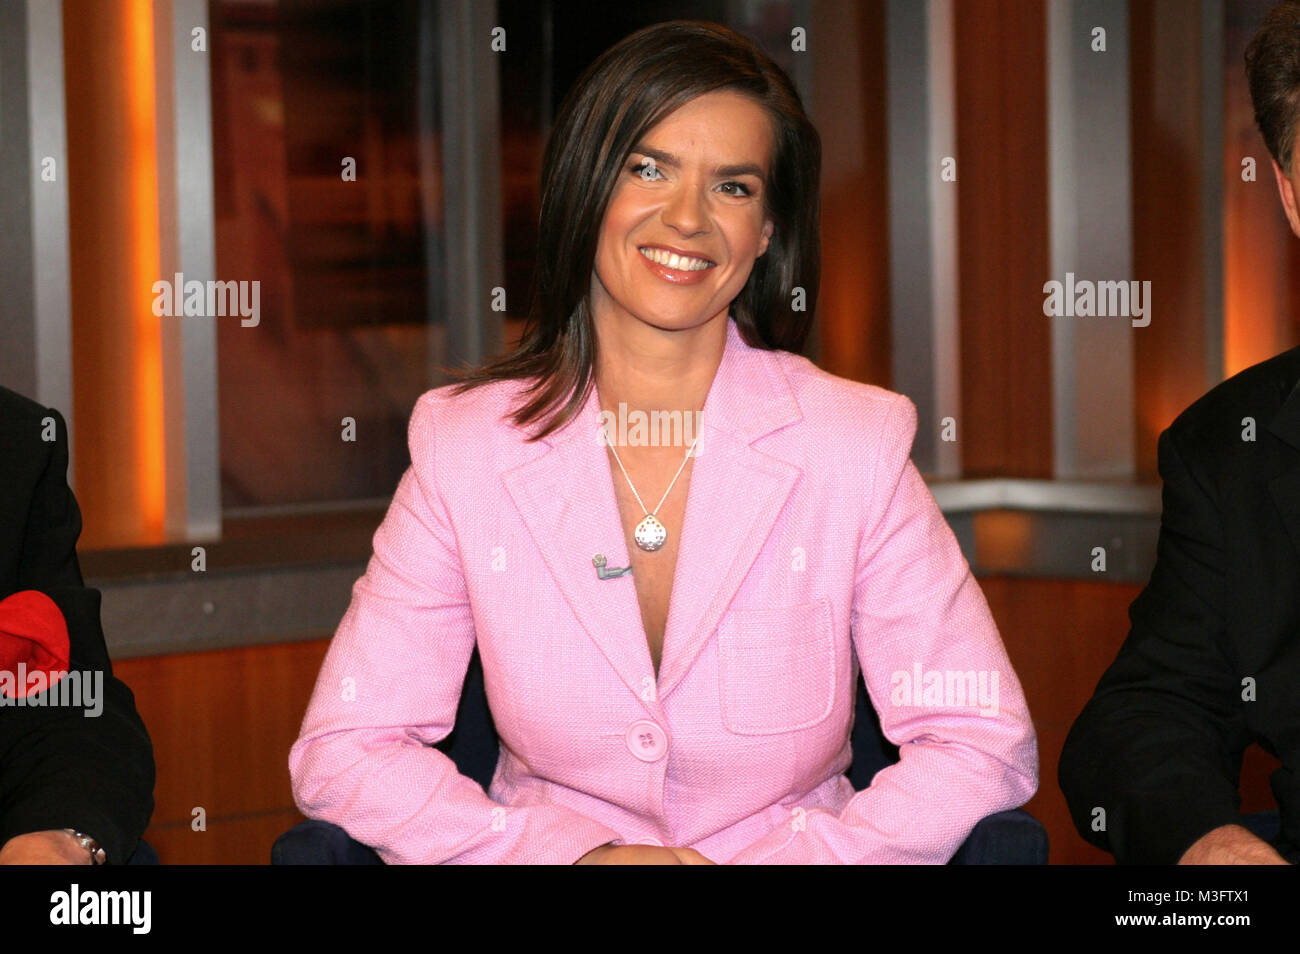 Goldene Uhr Stock Photos Goldene Uhr Stock Images Alamy Katharina Witt Stock Photos And Katharina Witt Stock Images